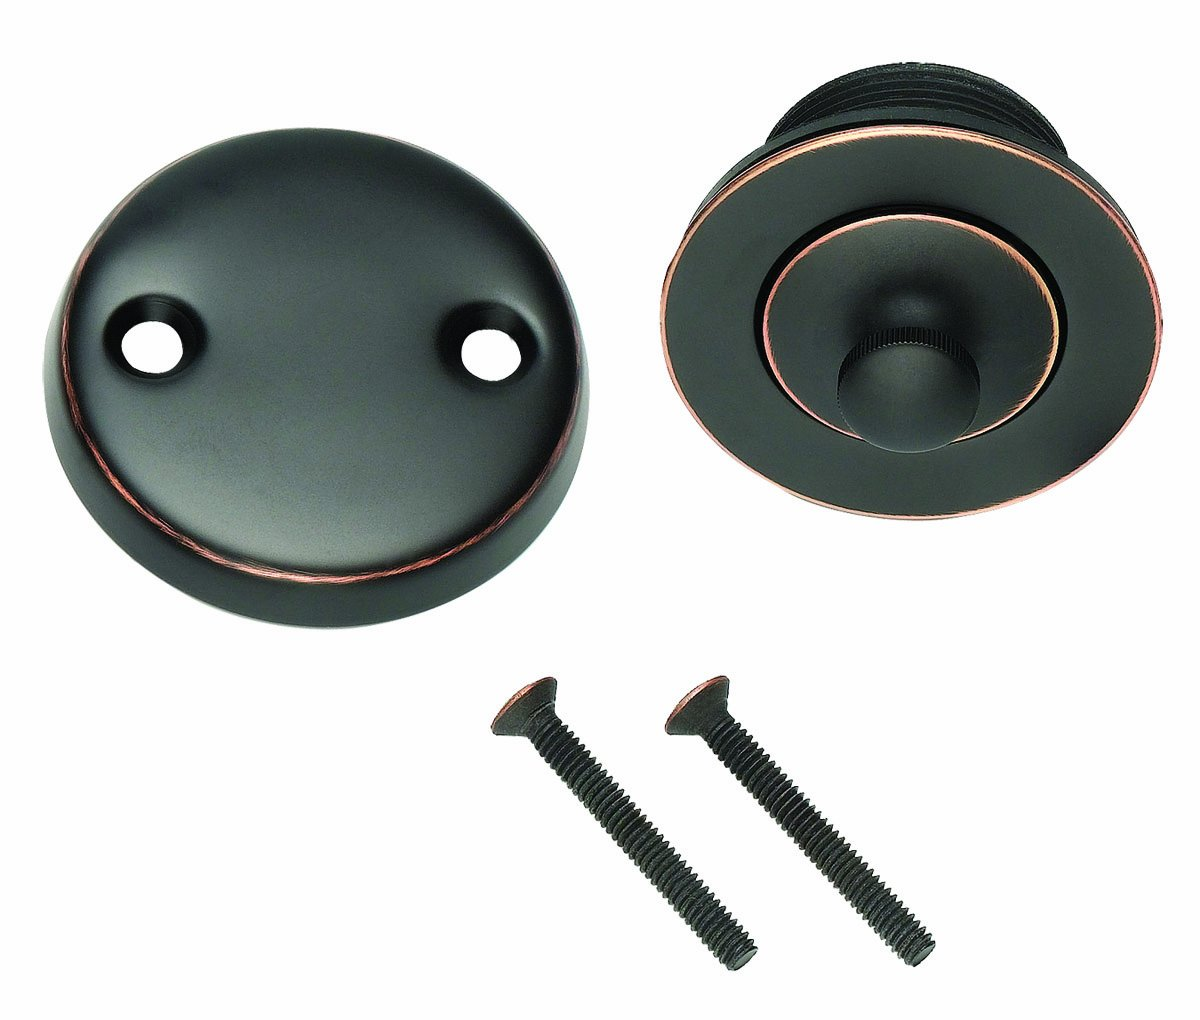 DESIGN HOUSE 522342 Lift and Turn Bath Drain, Oil Rubbed Bronze Finish